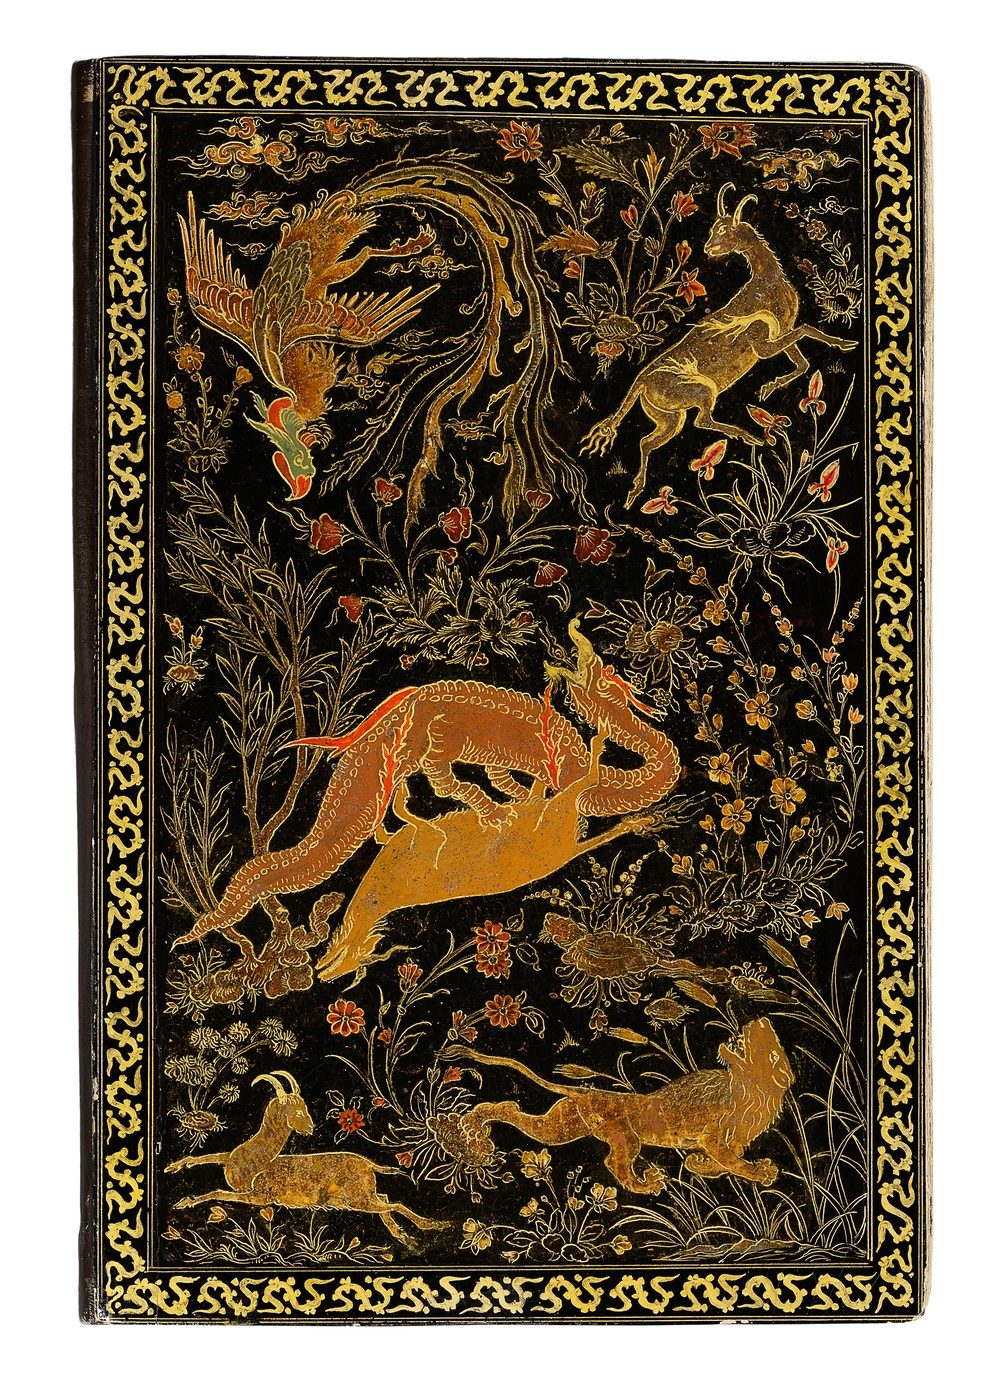 Back cover of binding painted with scenes of animals, real and mythical, some engaged in combat, in a landscape, from the manuscript of the Golestan (The Rose Garden) of Sa'di, c. 1580 CE.Folio Cat. 30  © The al-Sabah Collection, Dar al-Athar al-Islamiyyah, Kuwait